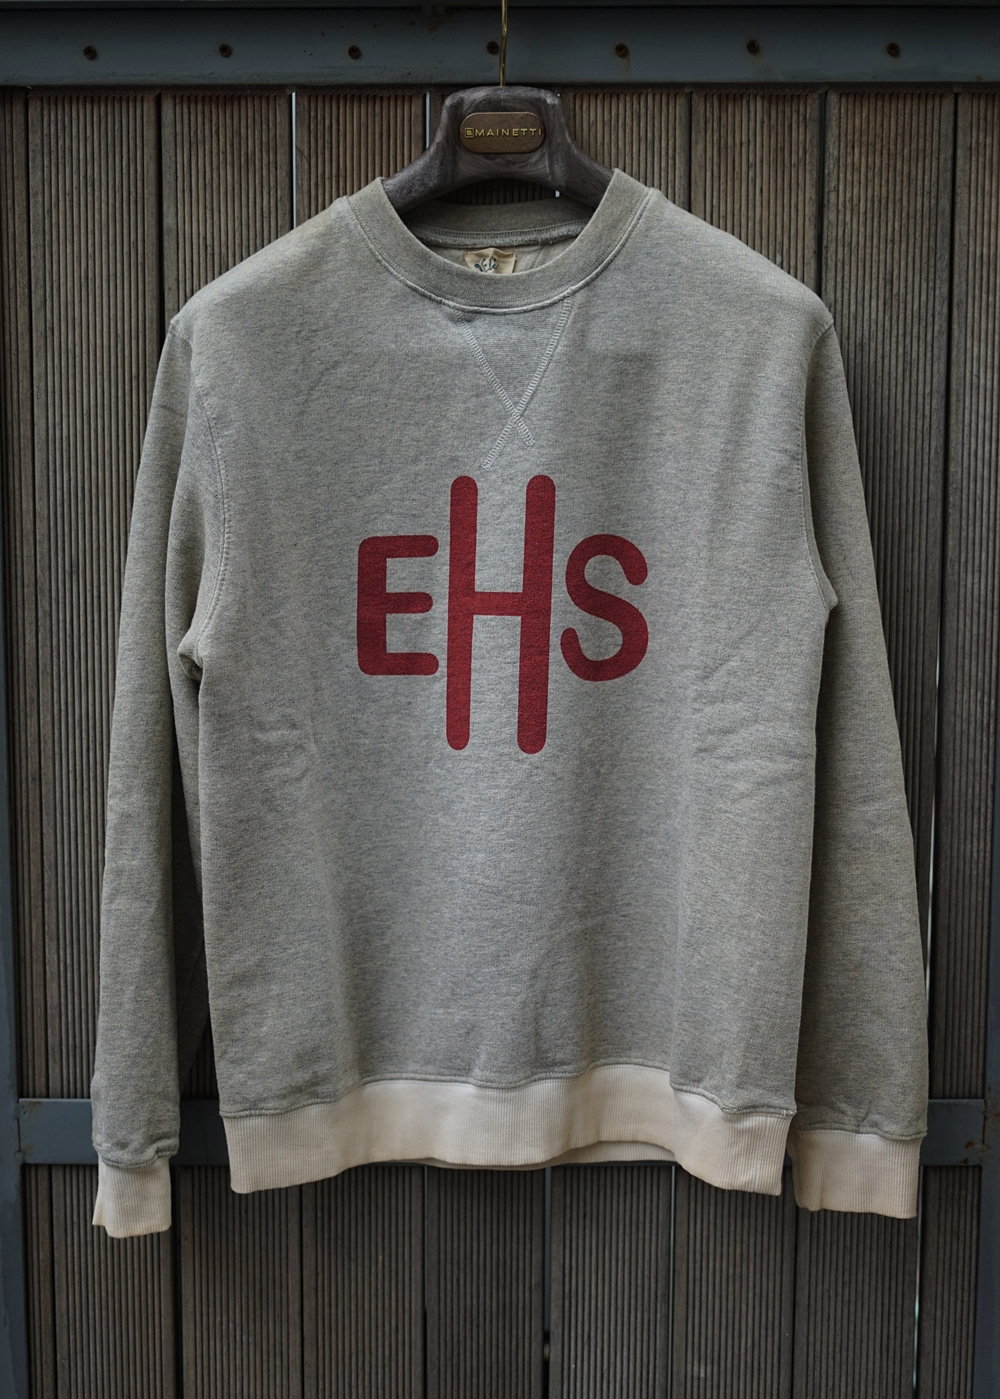 VINTAGE PRINT Sweat shirt GreyEAST HARBOUR SURPLUS이스트하버서플러스 X 와일드동키